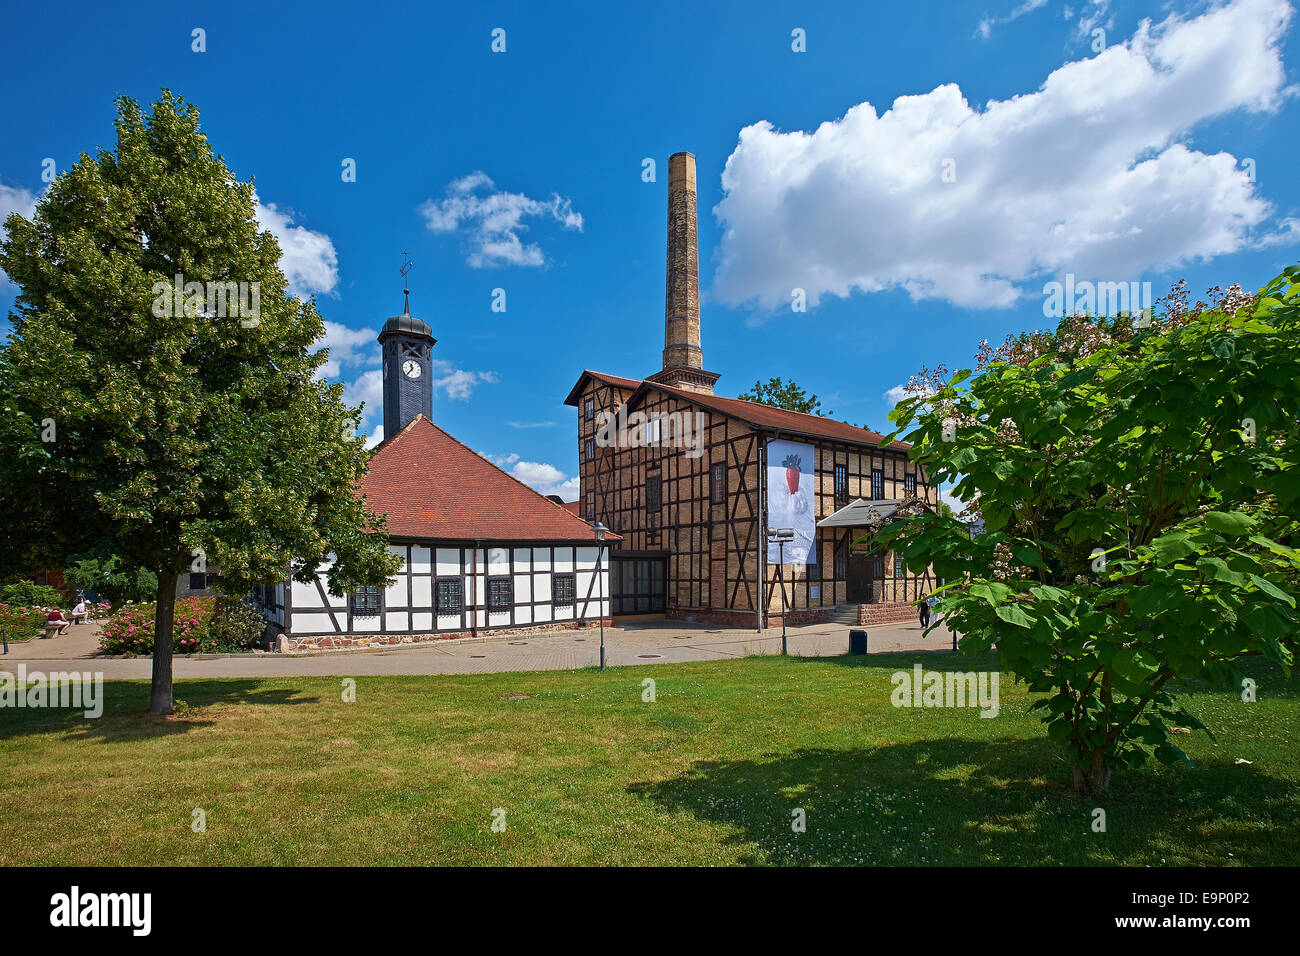 Technical Hallors and Saline Museum in Halle, Germany - Stock Image